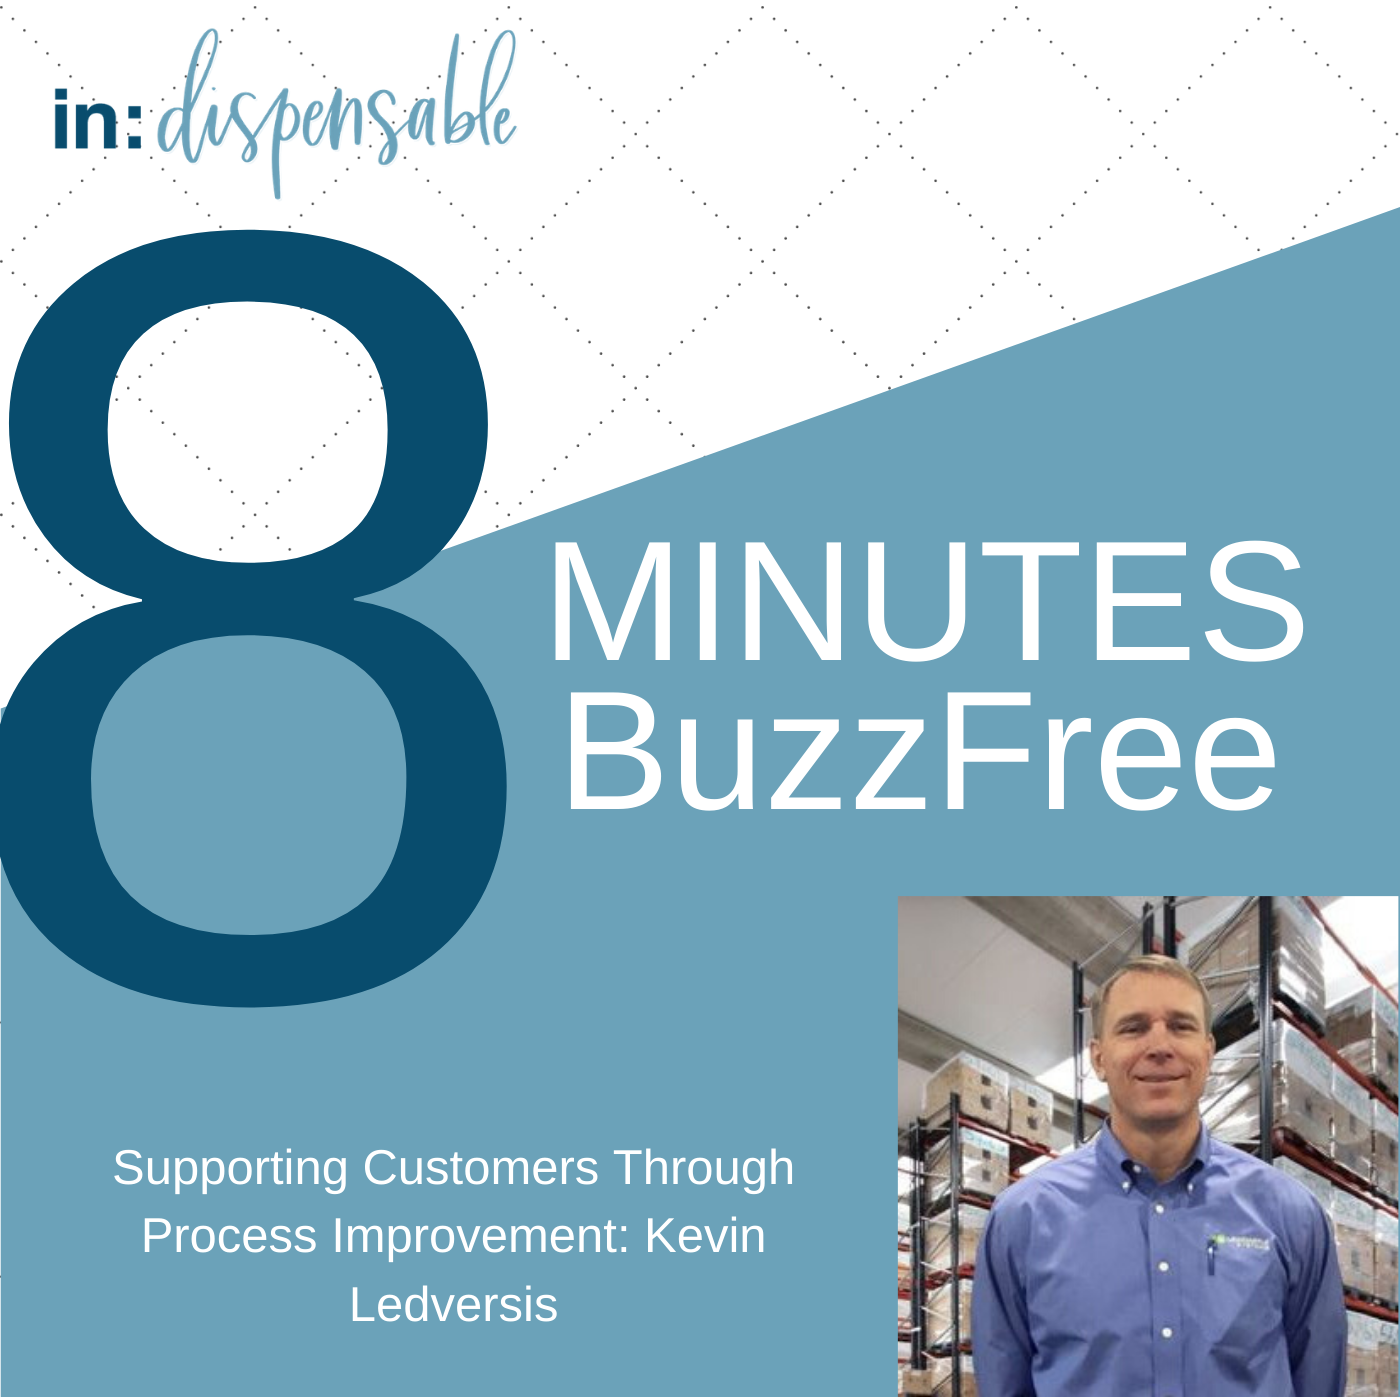 8 Minutes Buzz Free Customers and Processes